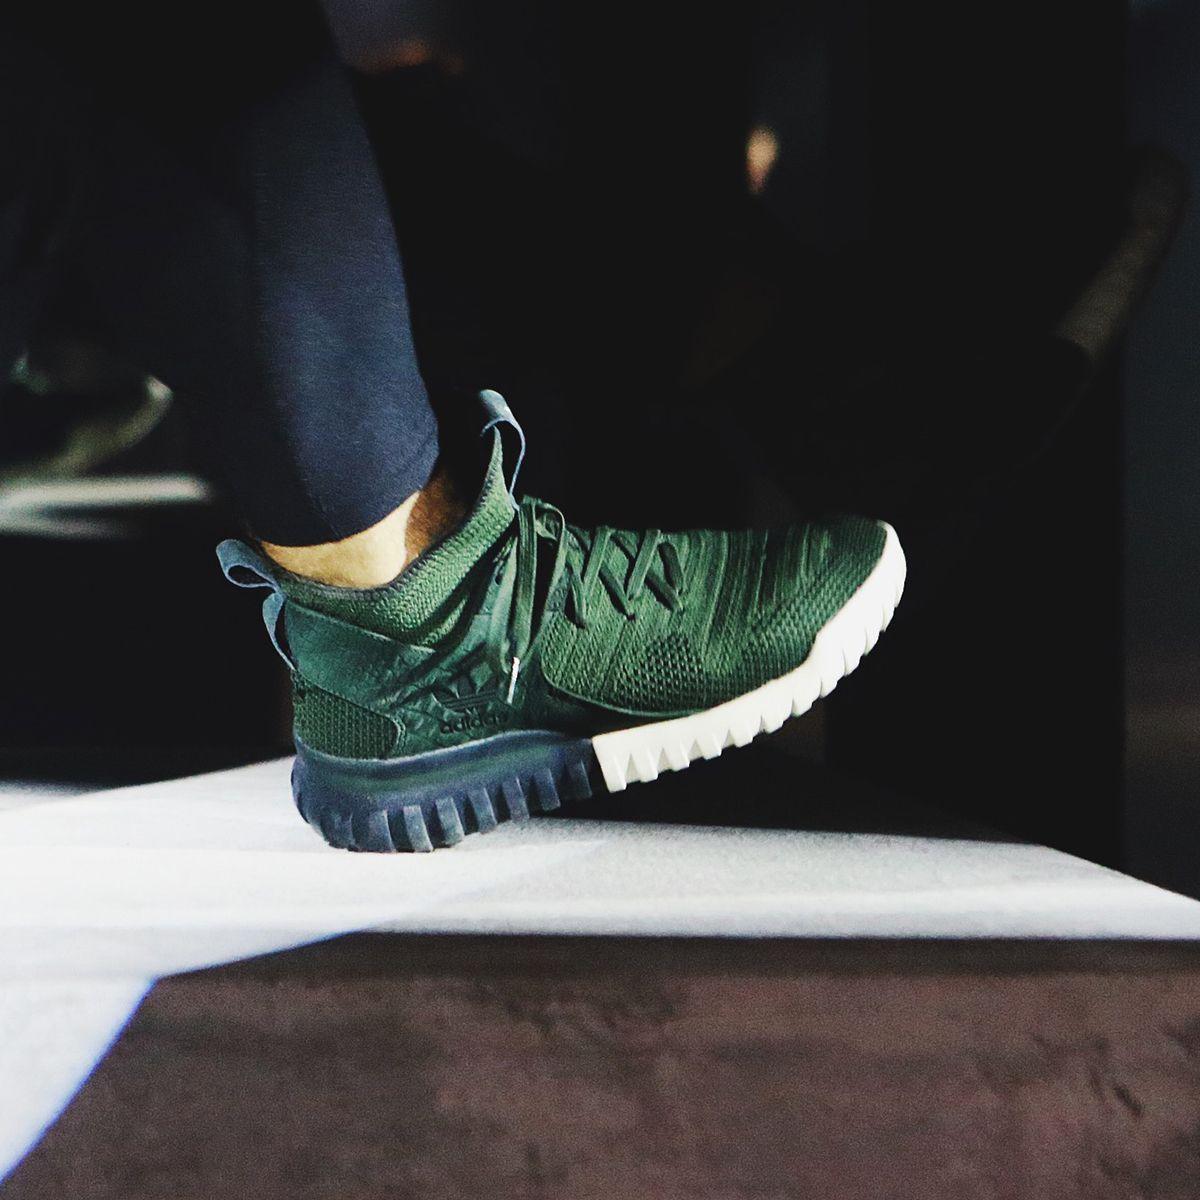 adidas Originals Tubular X Men's Basketball Shoes Night Cargo